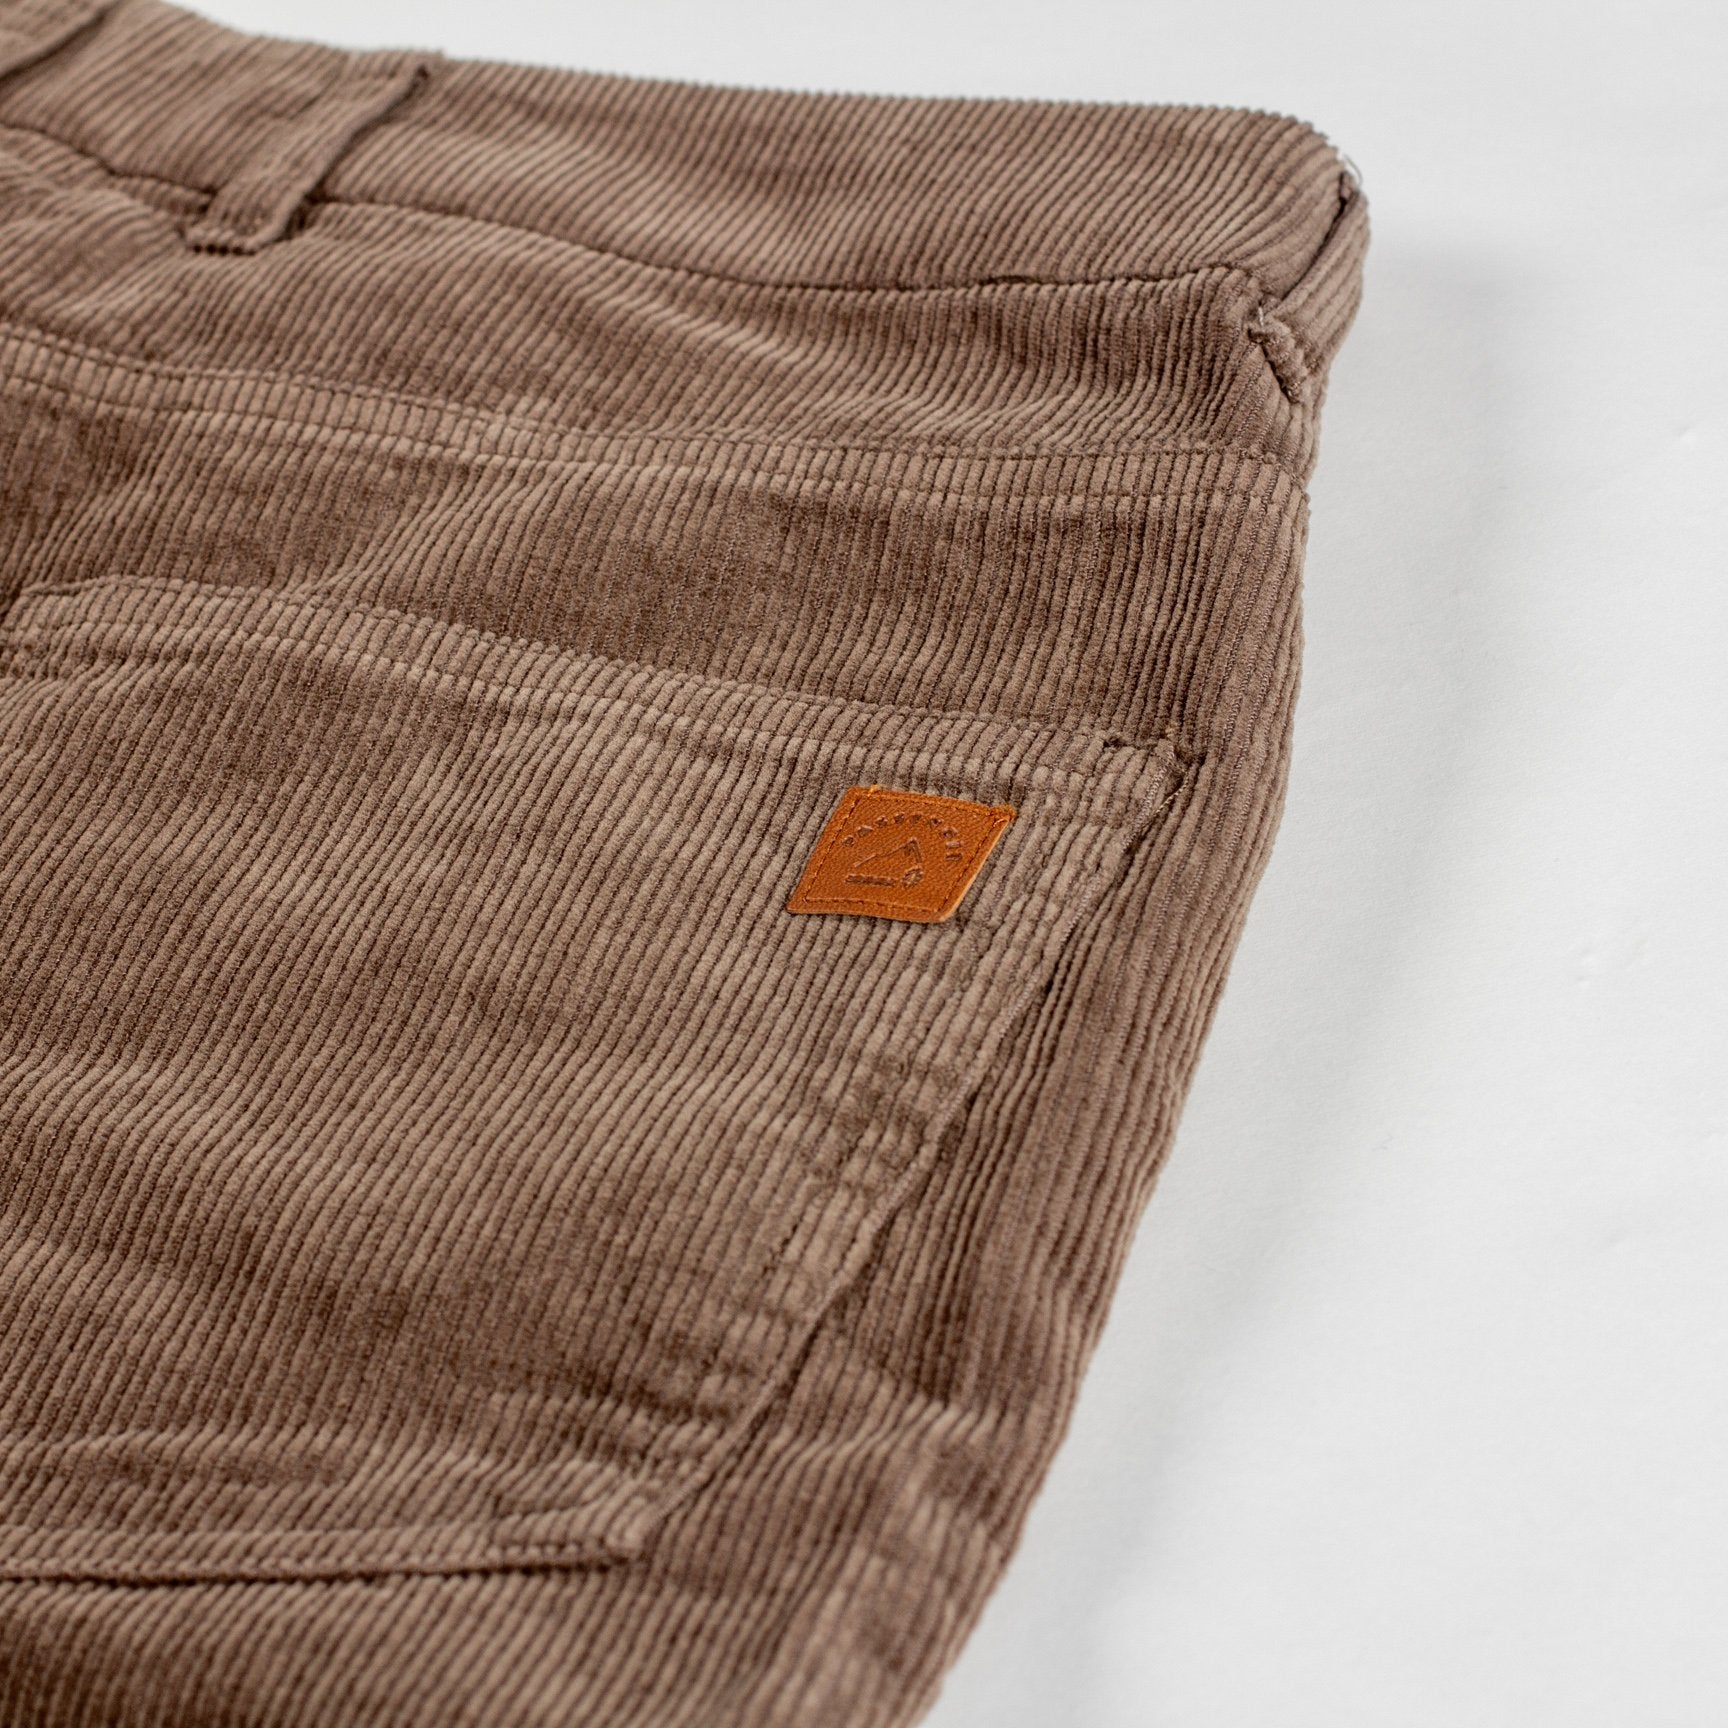 Daily Cord Trousers - Tan image 2